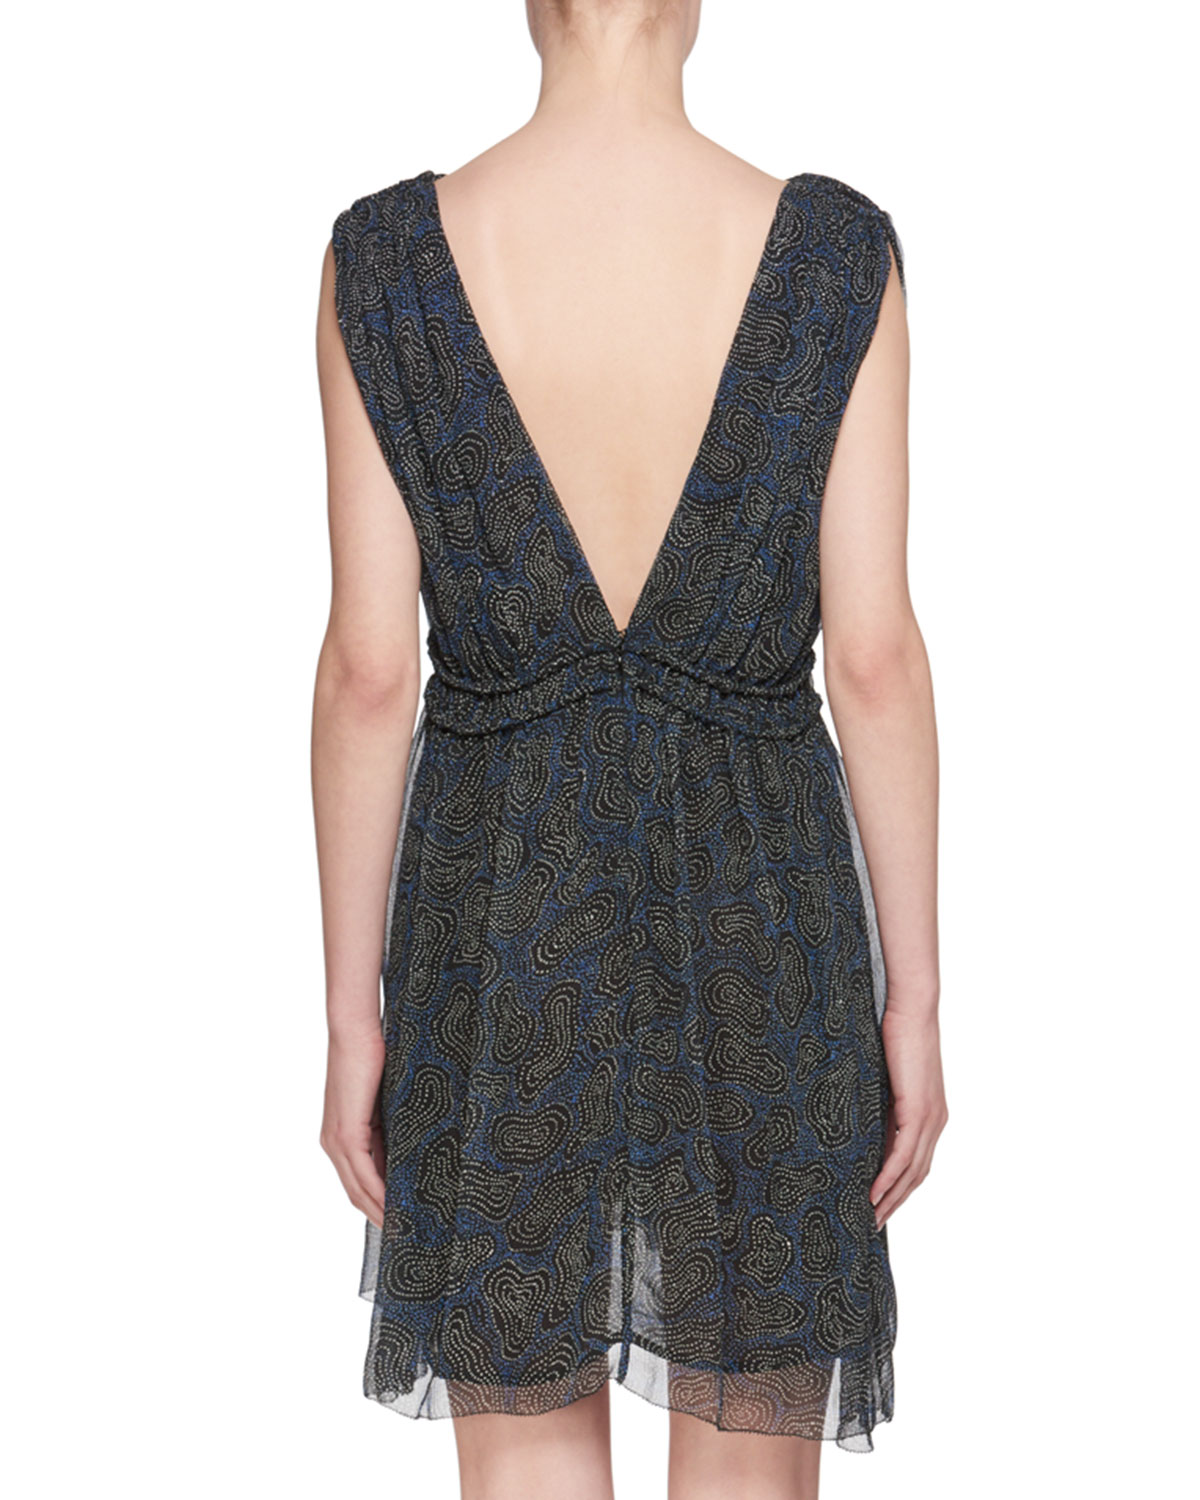 Extremely Online Cheap Sale Huge Surprise Estelle Plunging-Neck Sleeveless Printed Silk Dress Isabel Marant Sale Cheap Online 3kELj